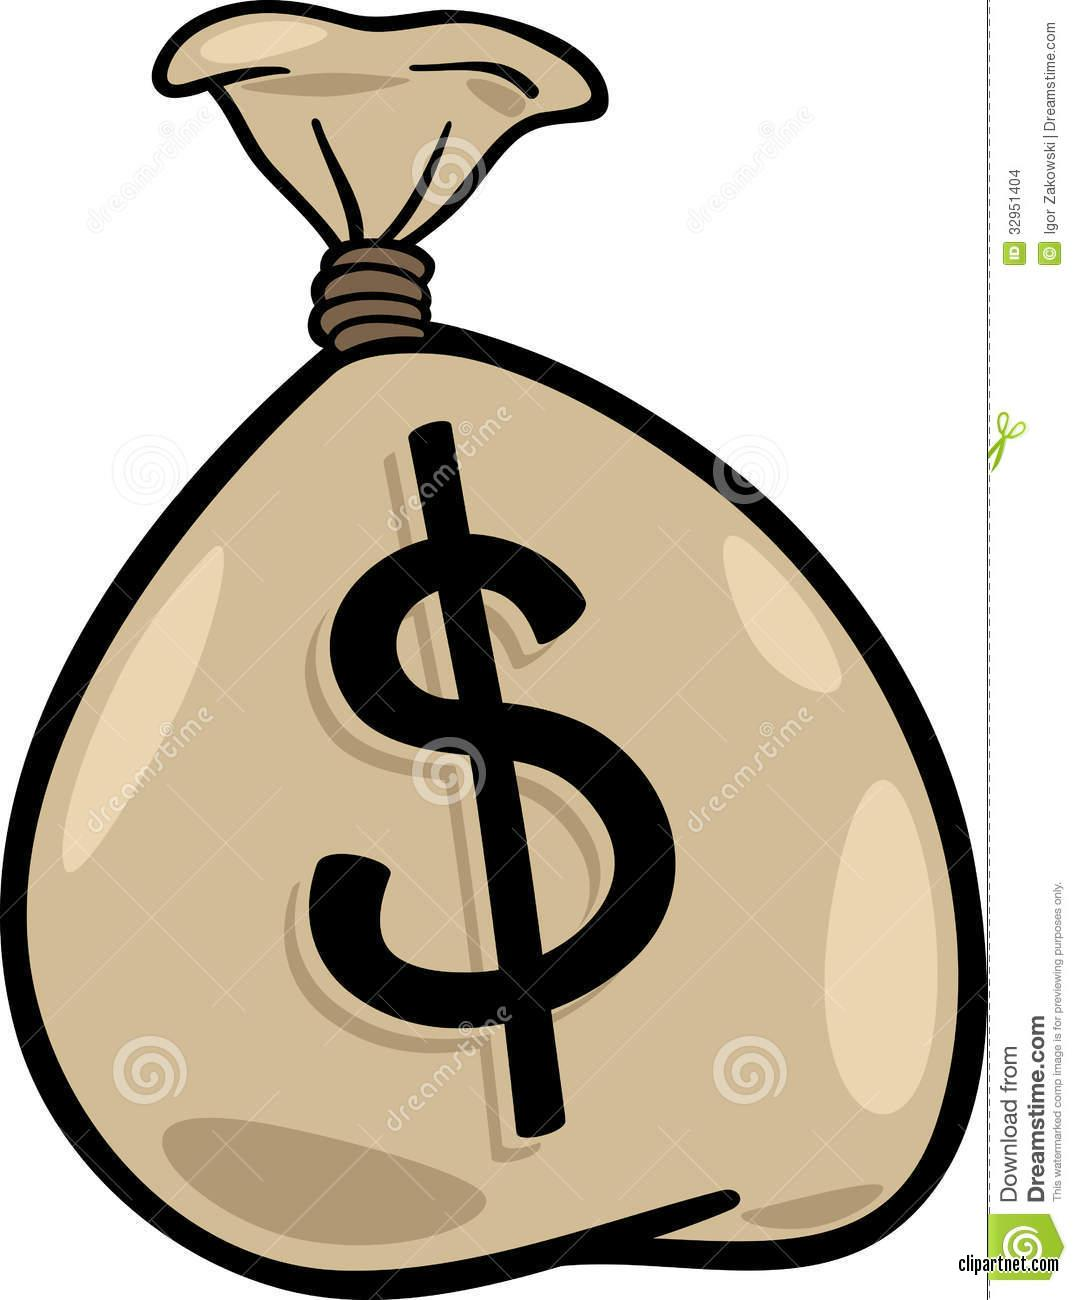 23712 Clip Art Graphic Of A Green Usd Dollar Sign, Usd Free.